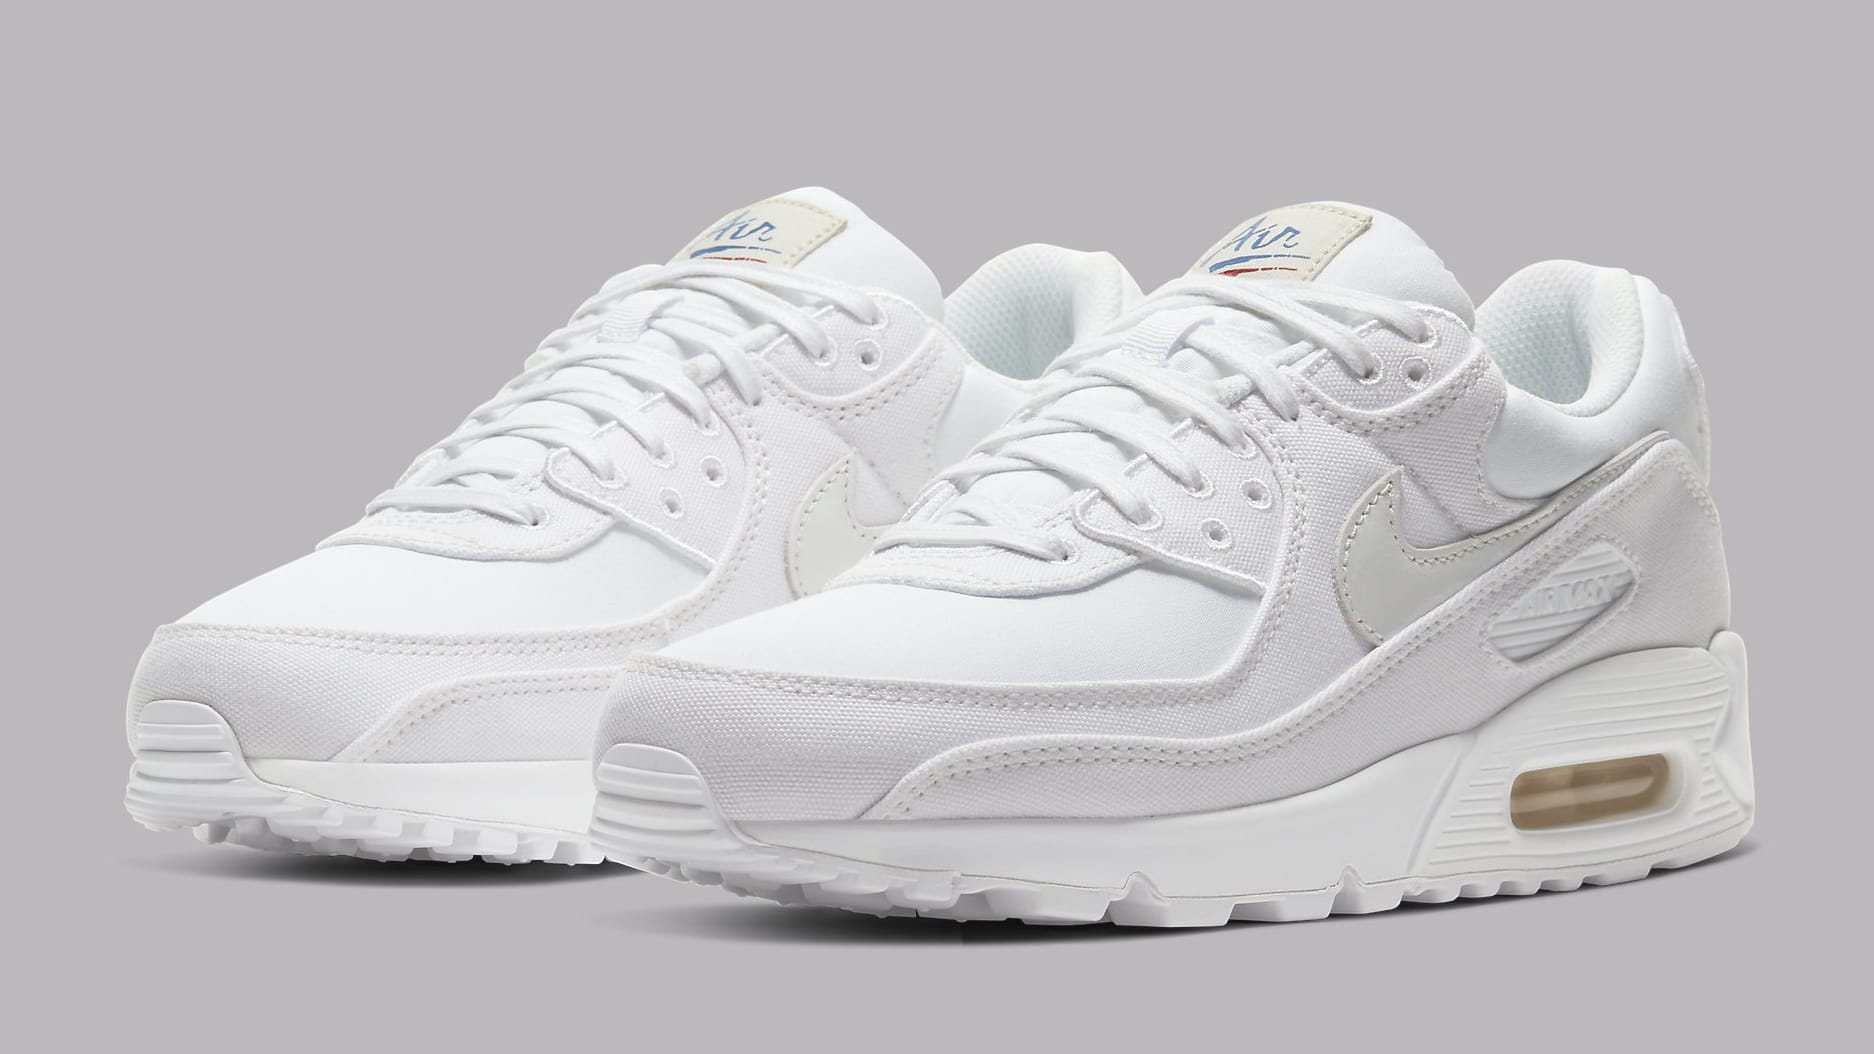 nike-air-max-90-paris-city-pack-cq0912-100-pair